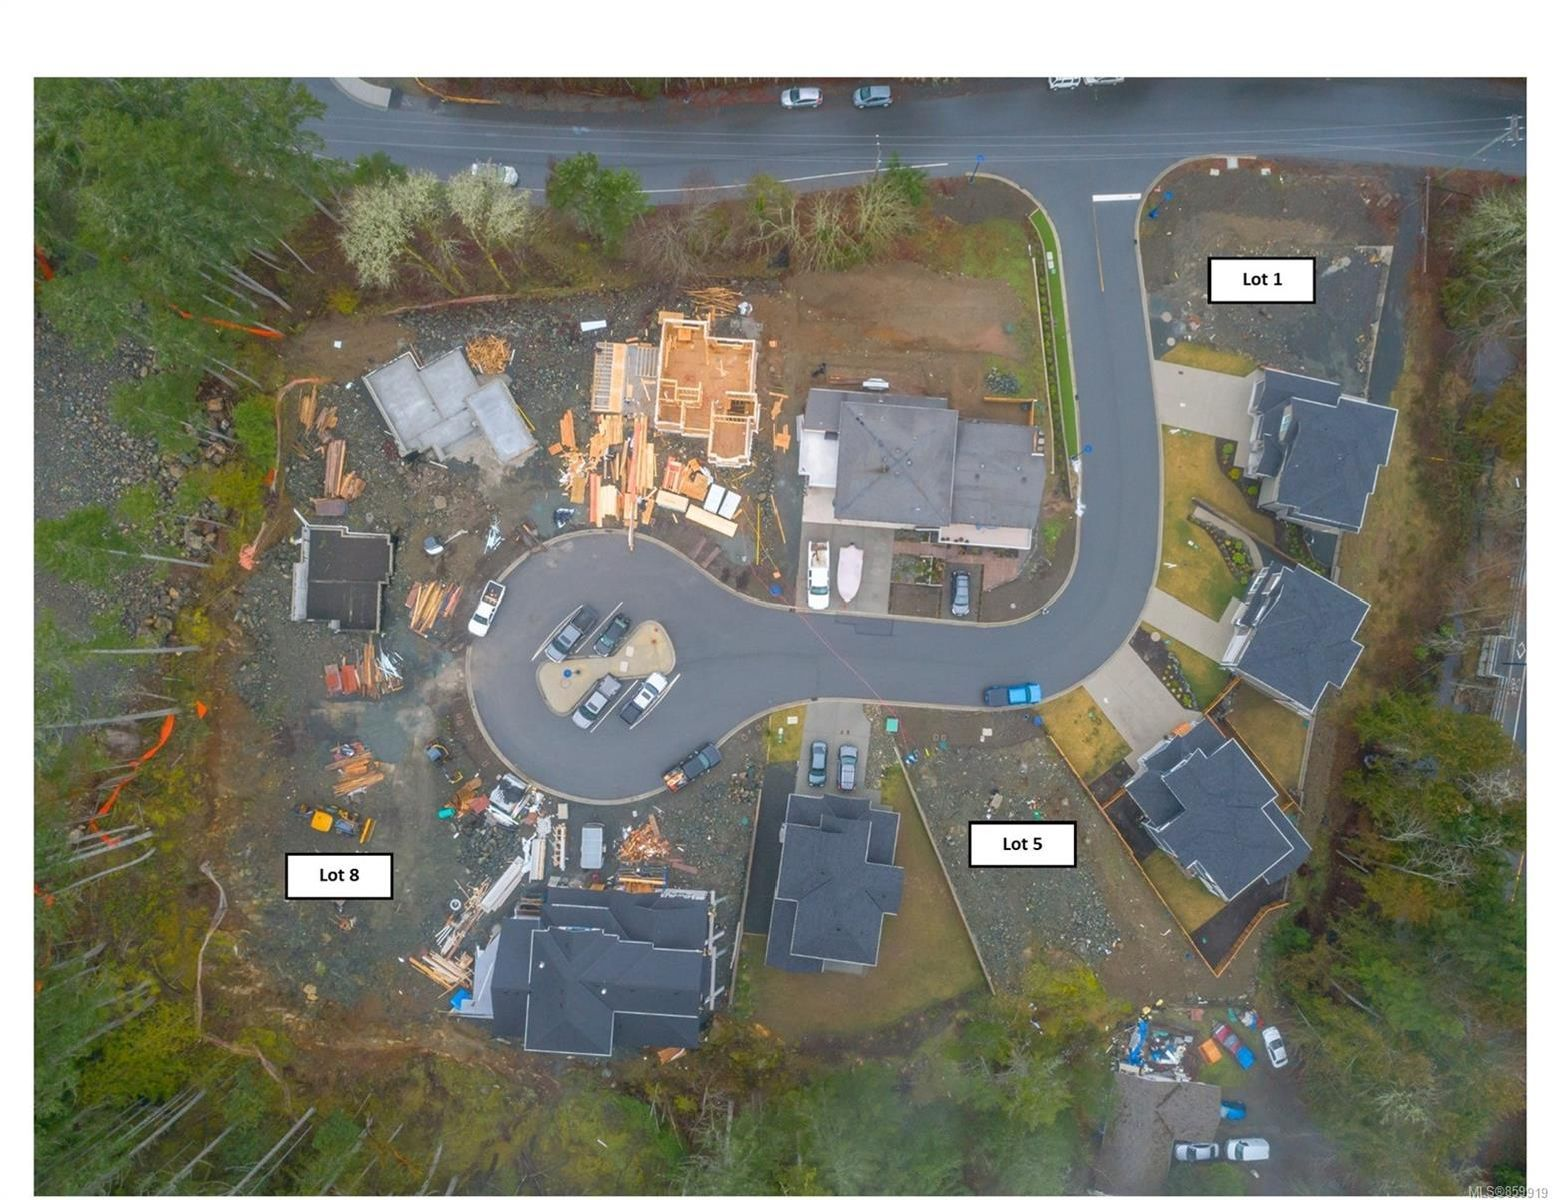 Main Photo: 3619 Urban Rise in : La Olympic View Land for sale (Langford)  : MLS®# 859919